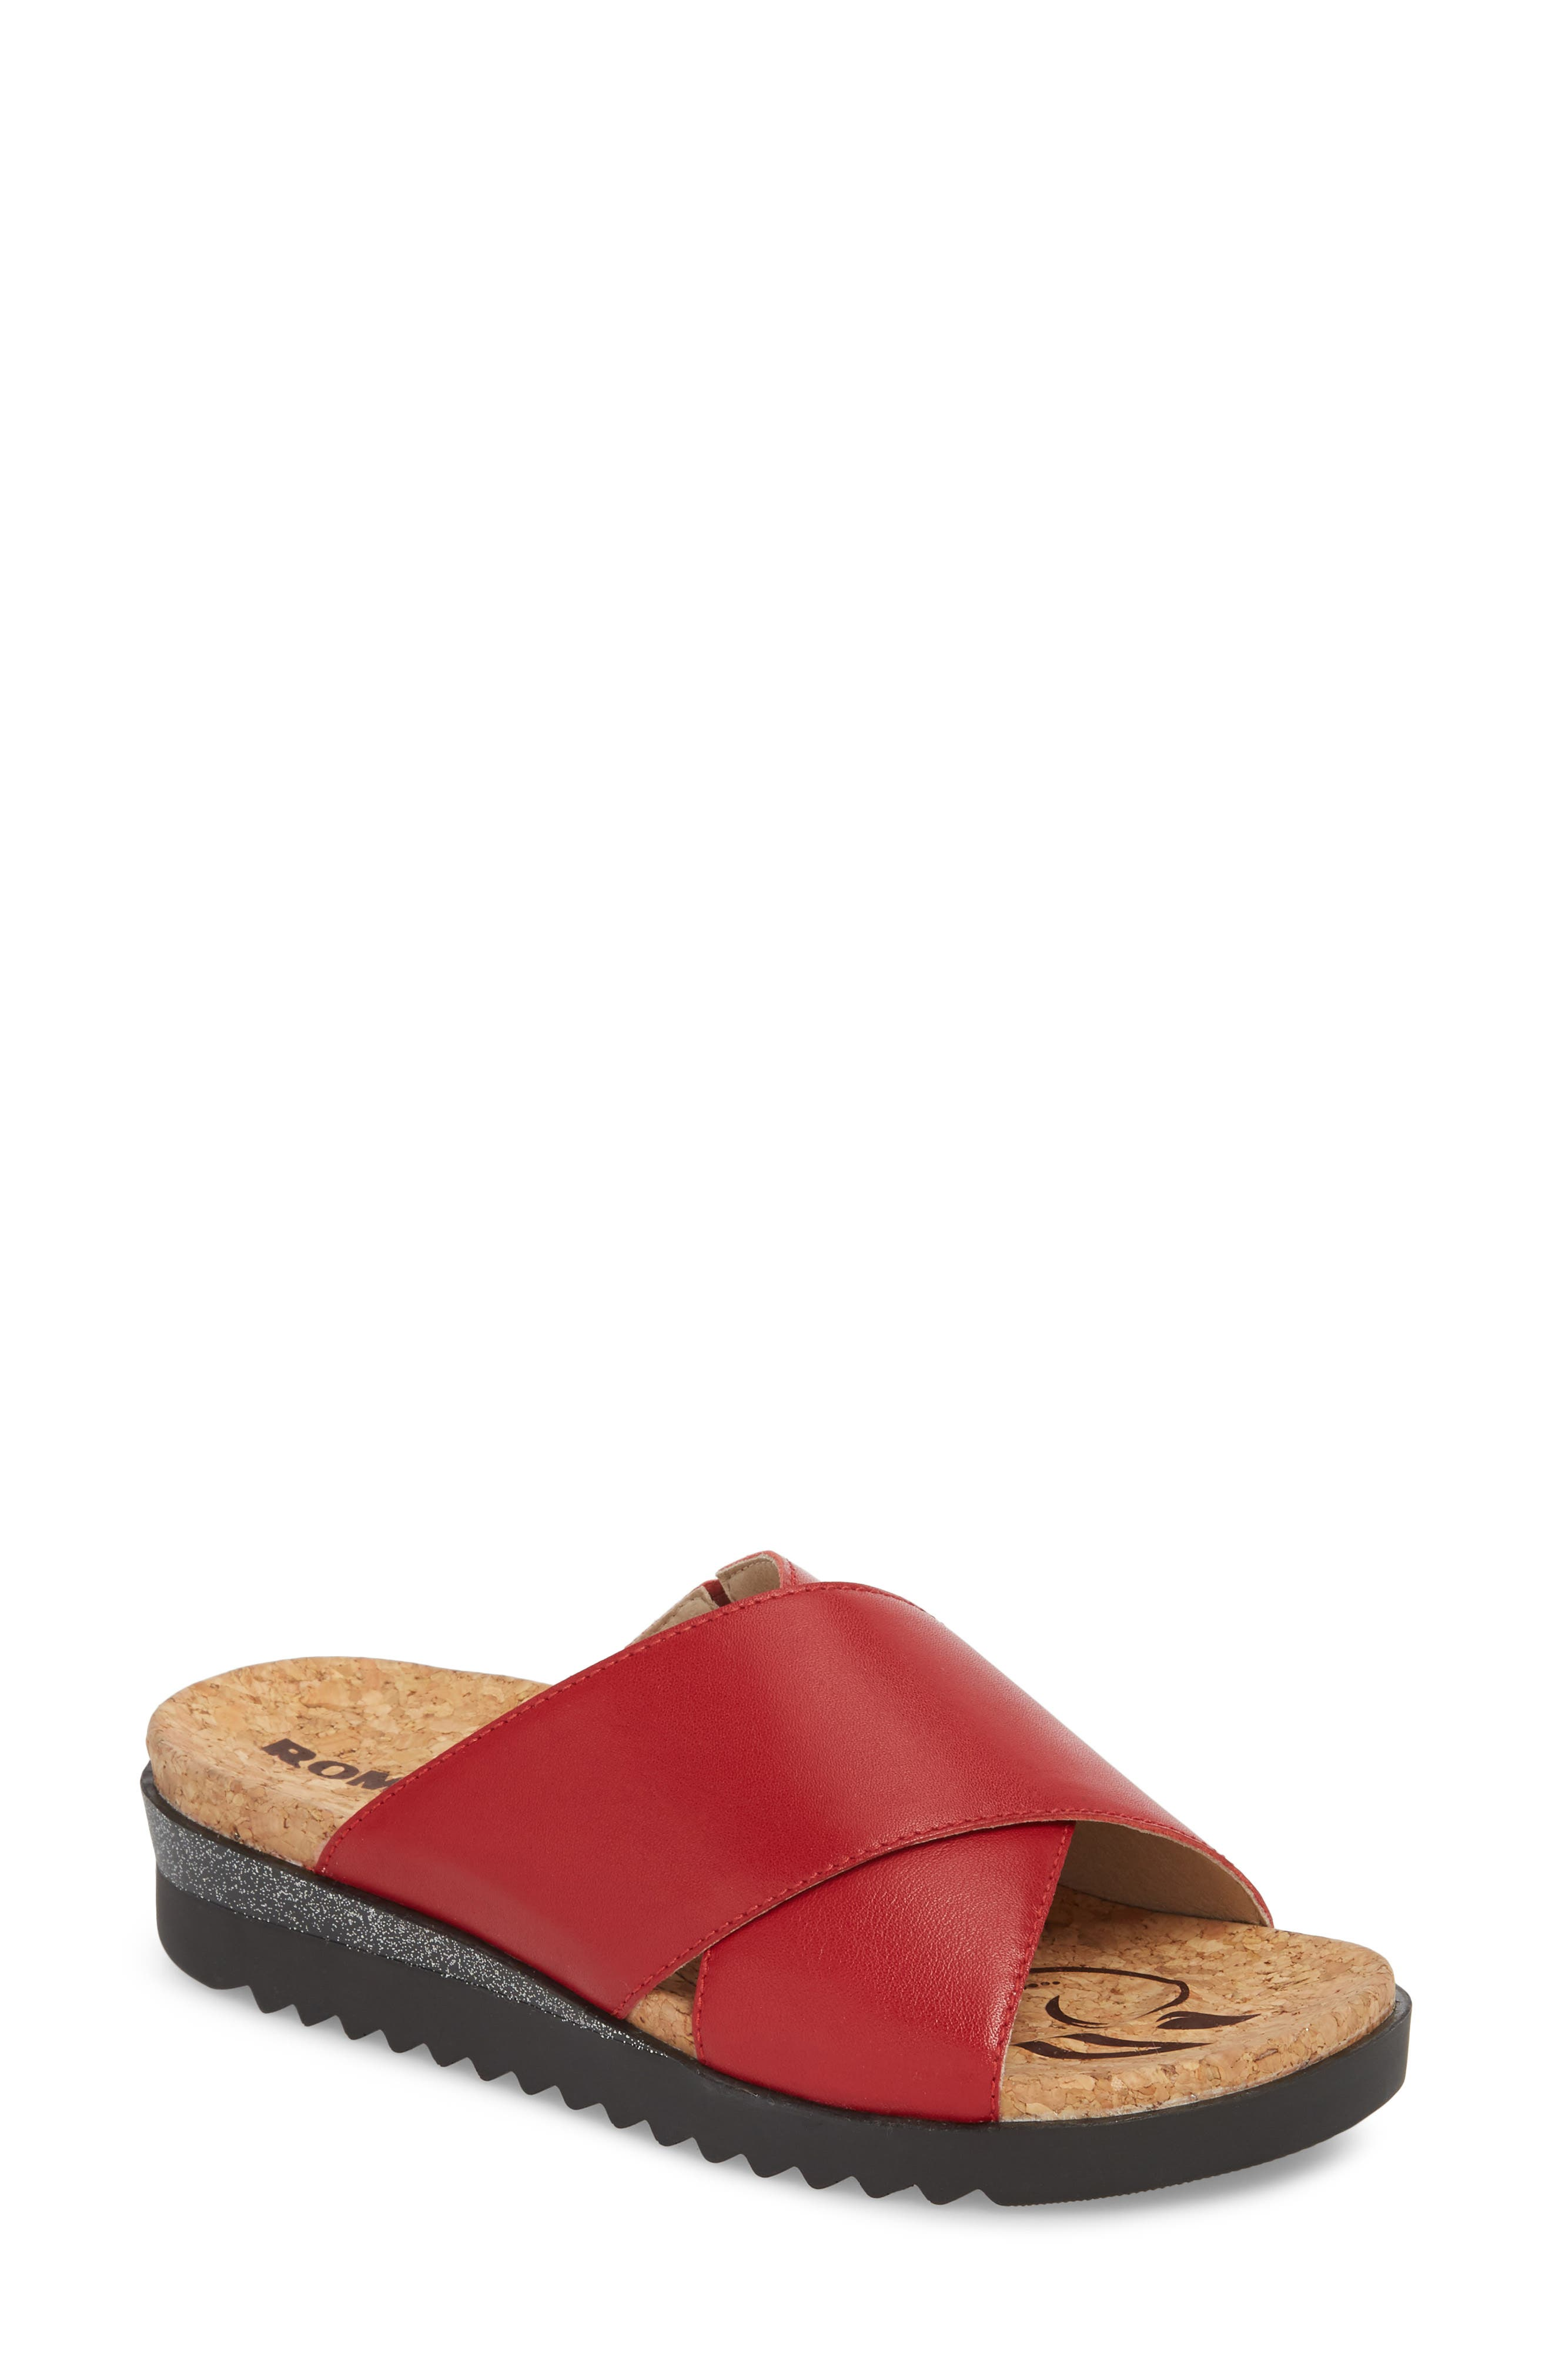 Hollywood 02 Slide Sandal,                             Main thumbnail 1, color,                             Red Leather